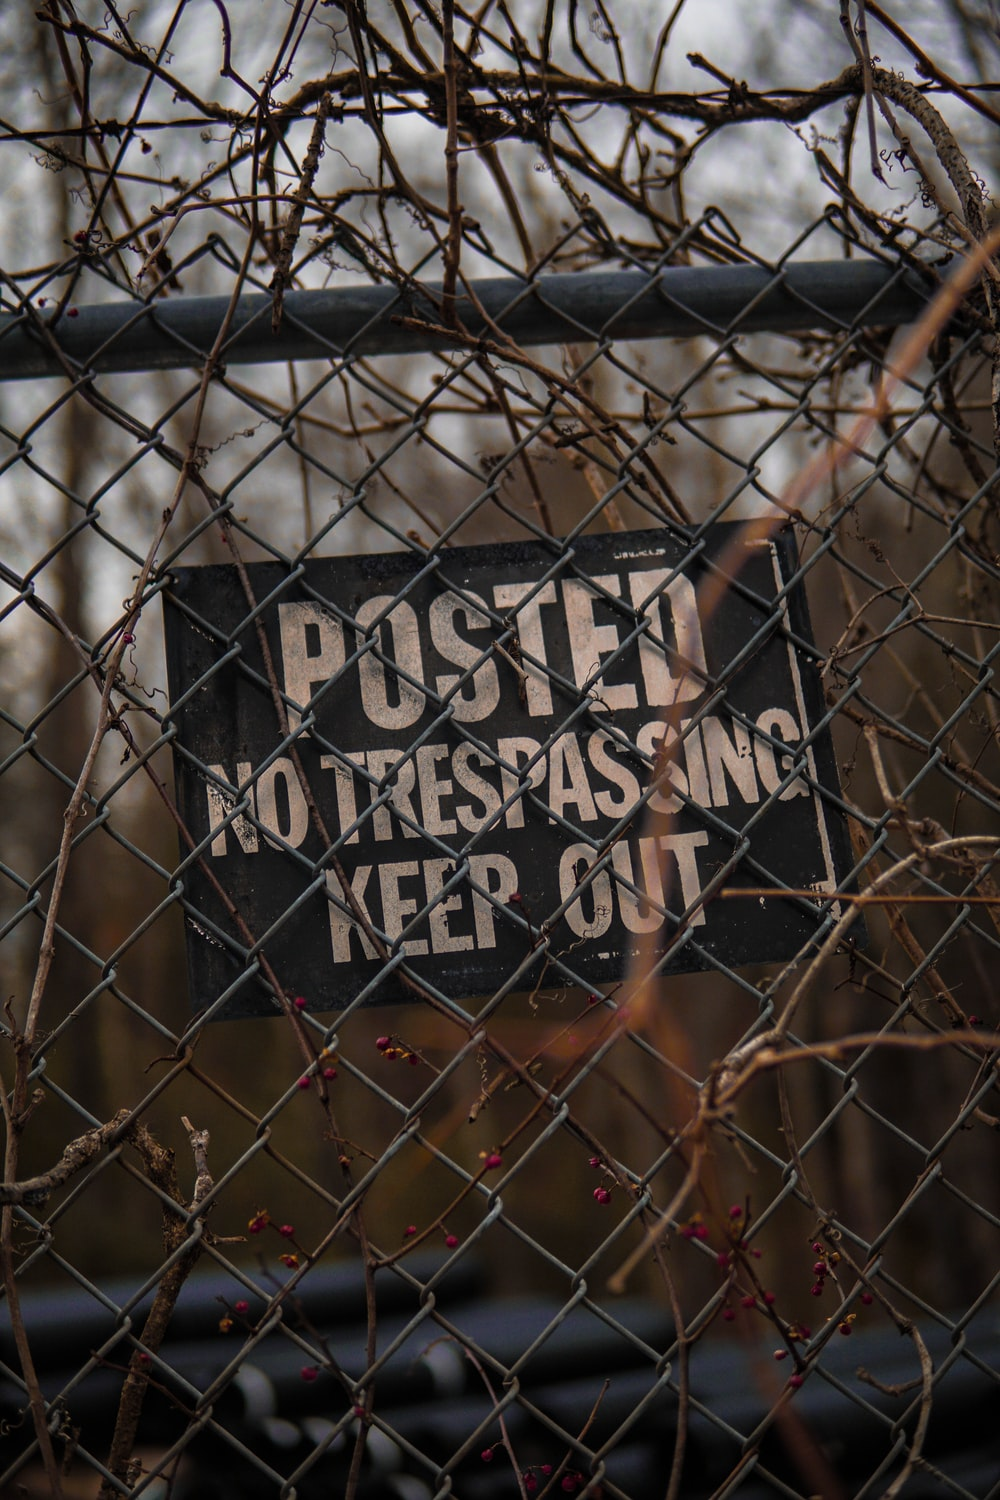 Posted No Trespassing Keep Out signage